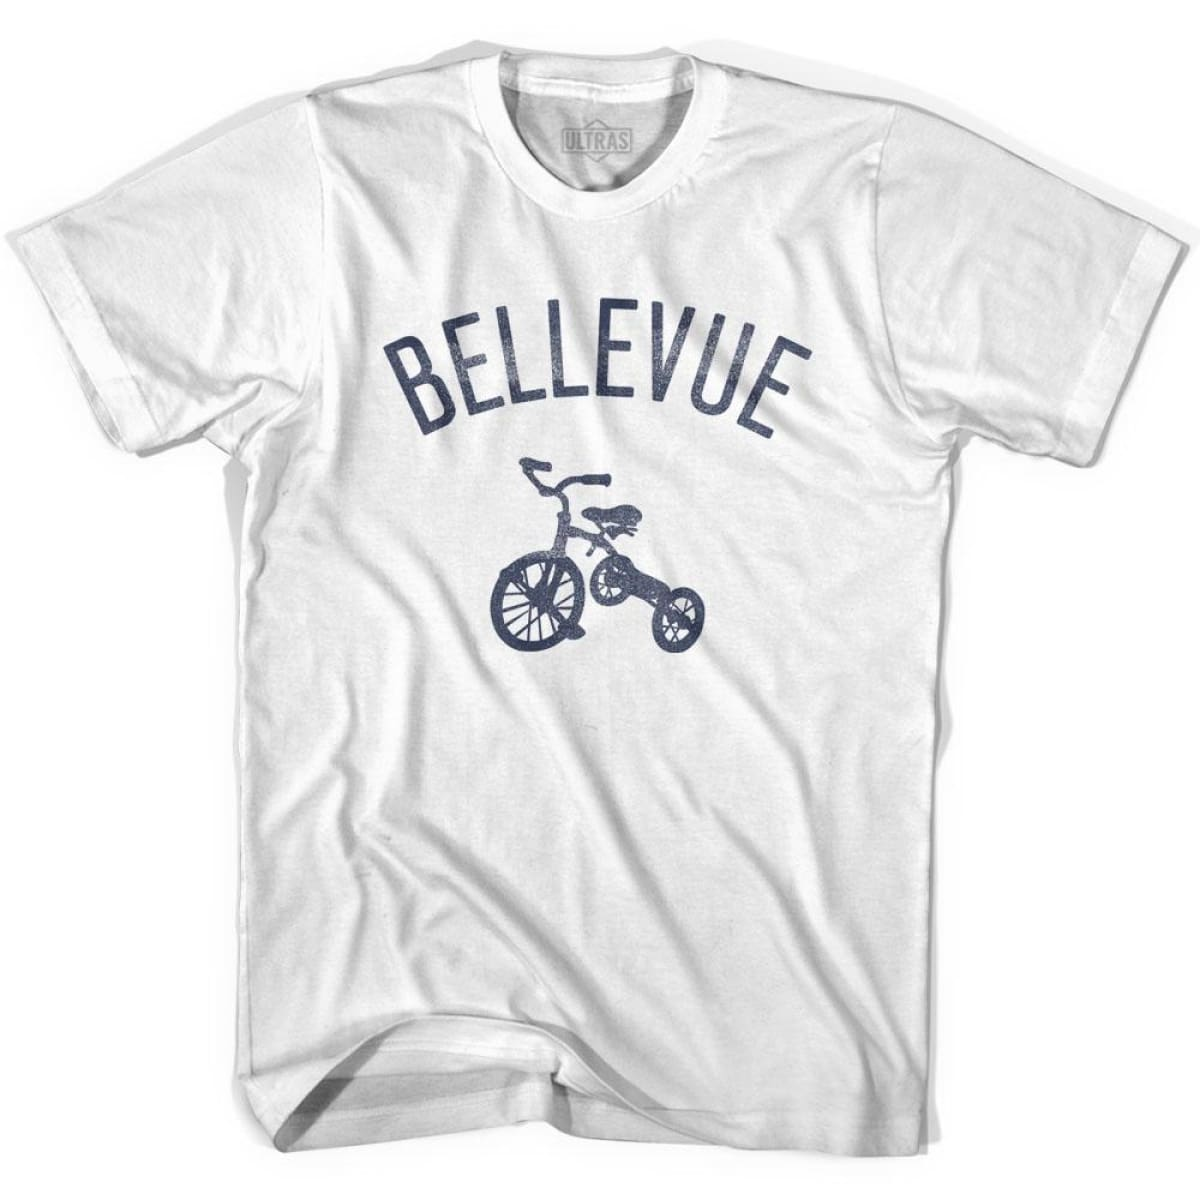 Bellevue City Tricycle Youth Cotton T-shirt - Tricycle City